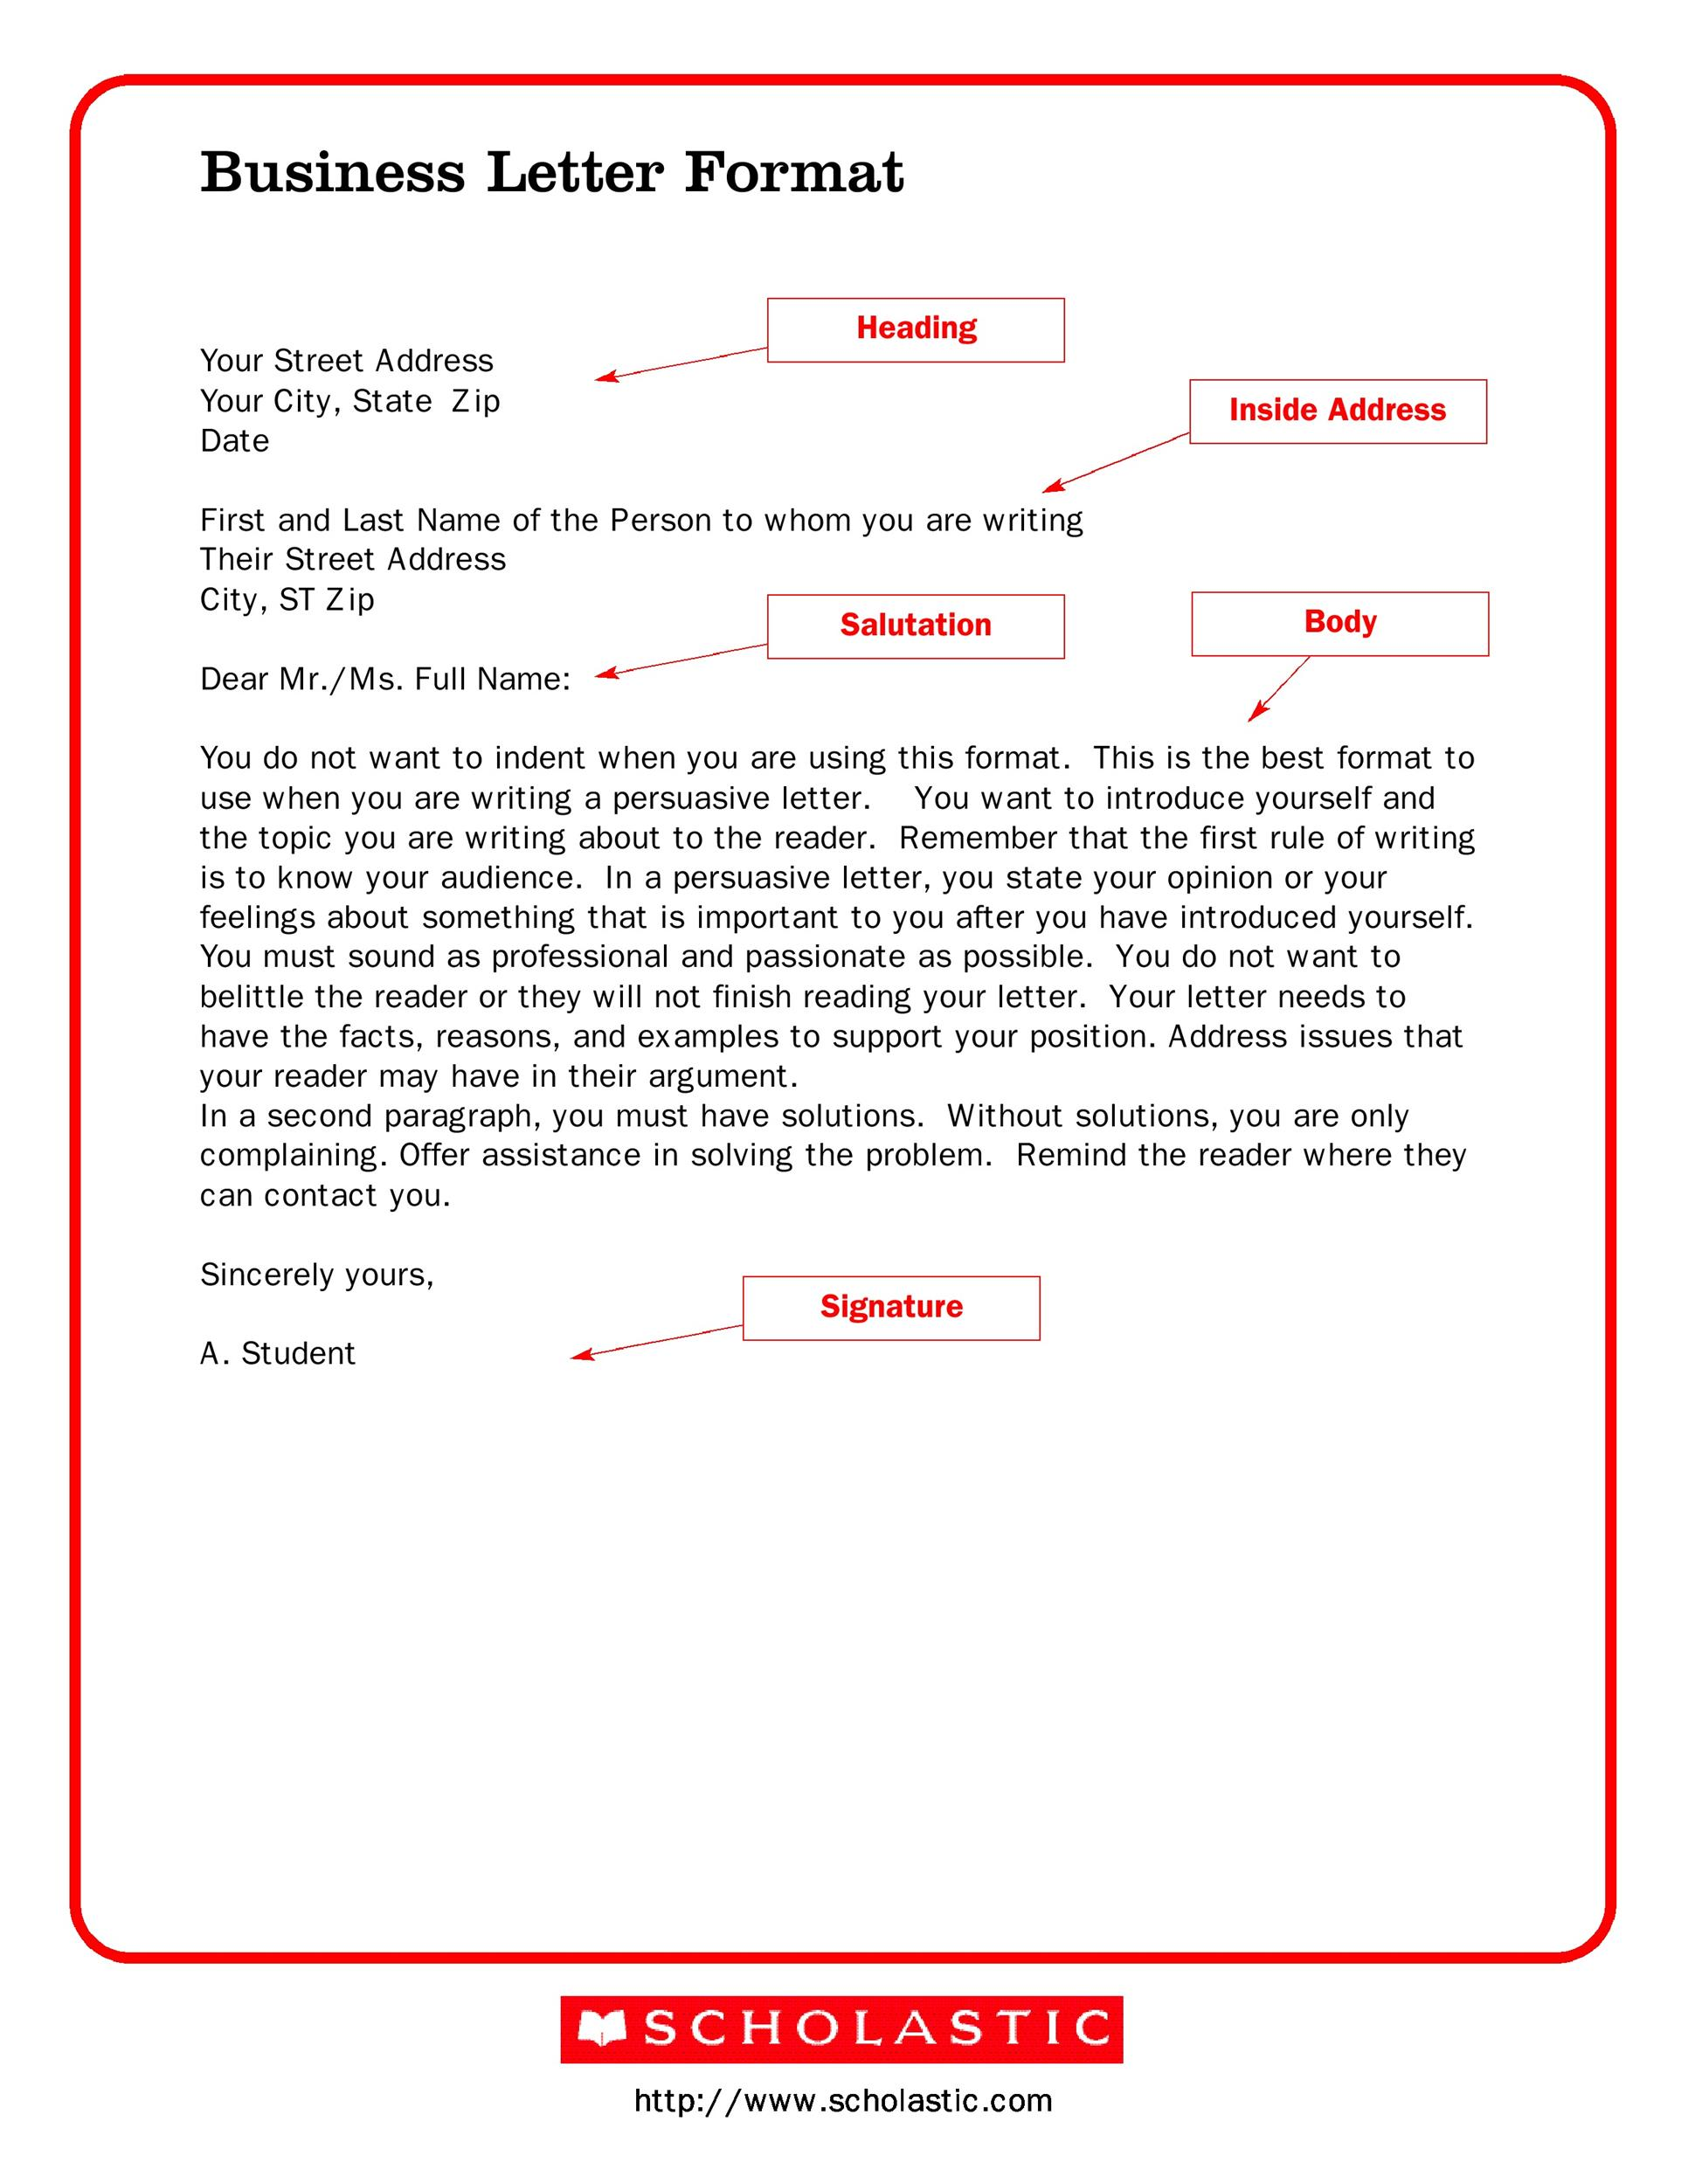 35 Formal / Business Letter Format Templates & Examples   Template Lab